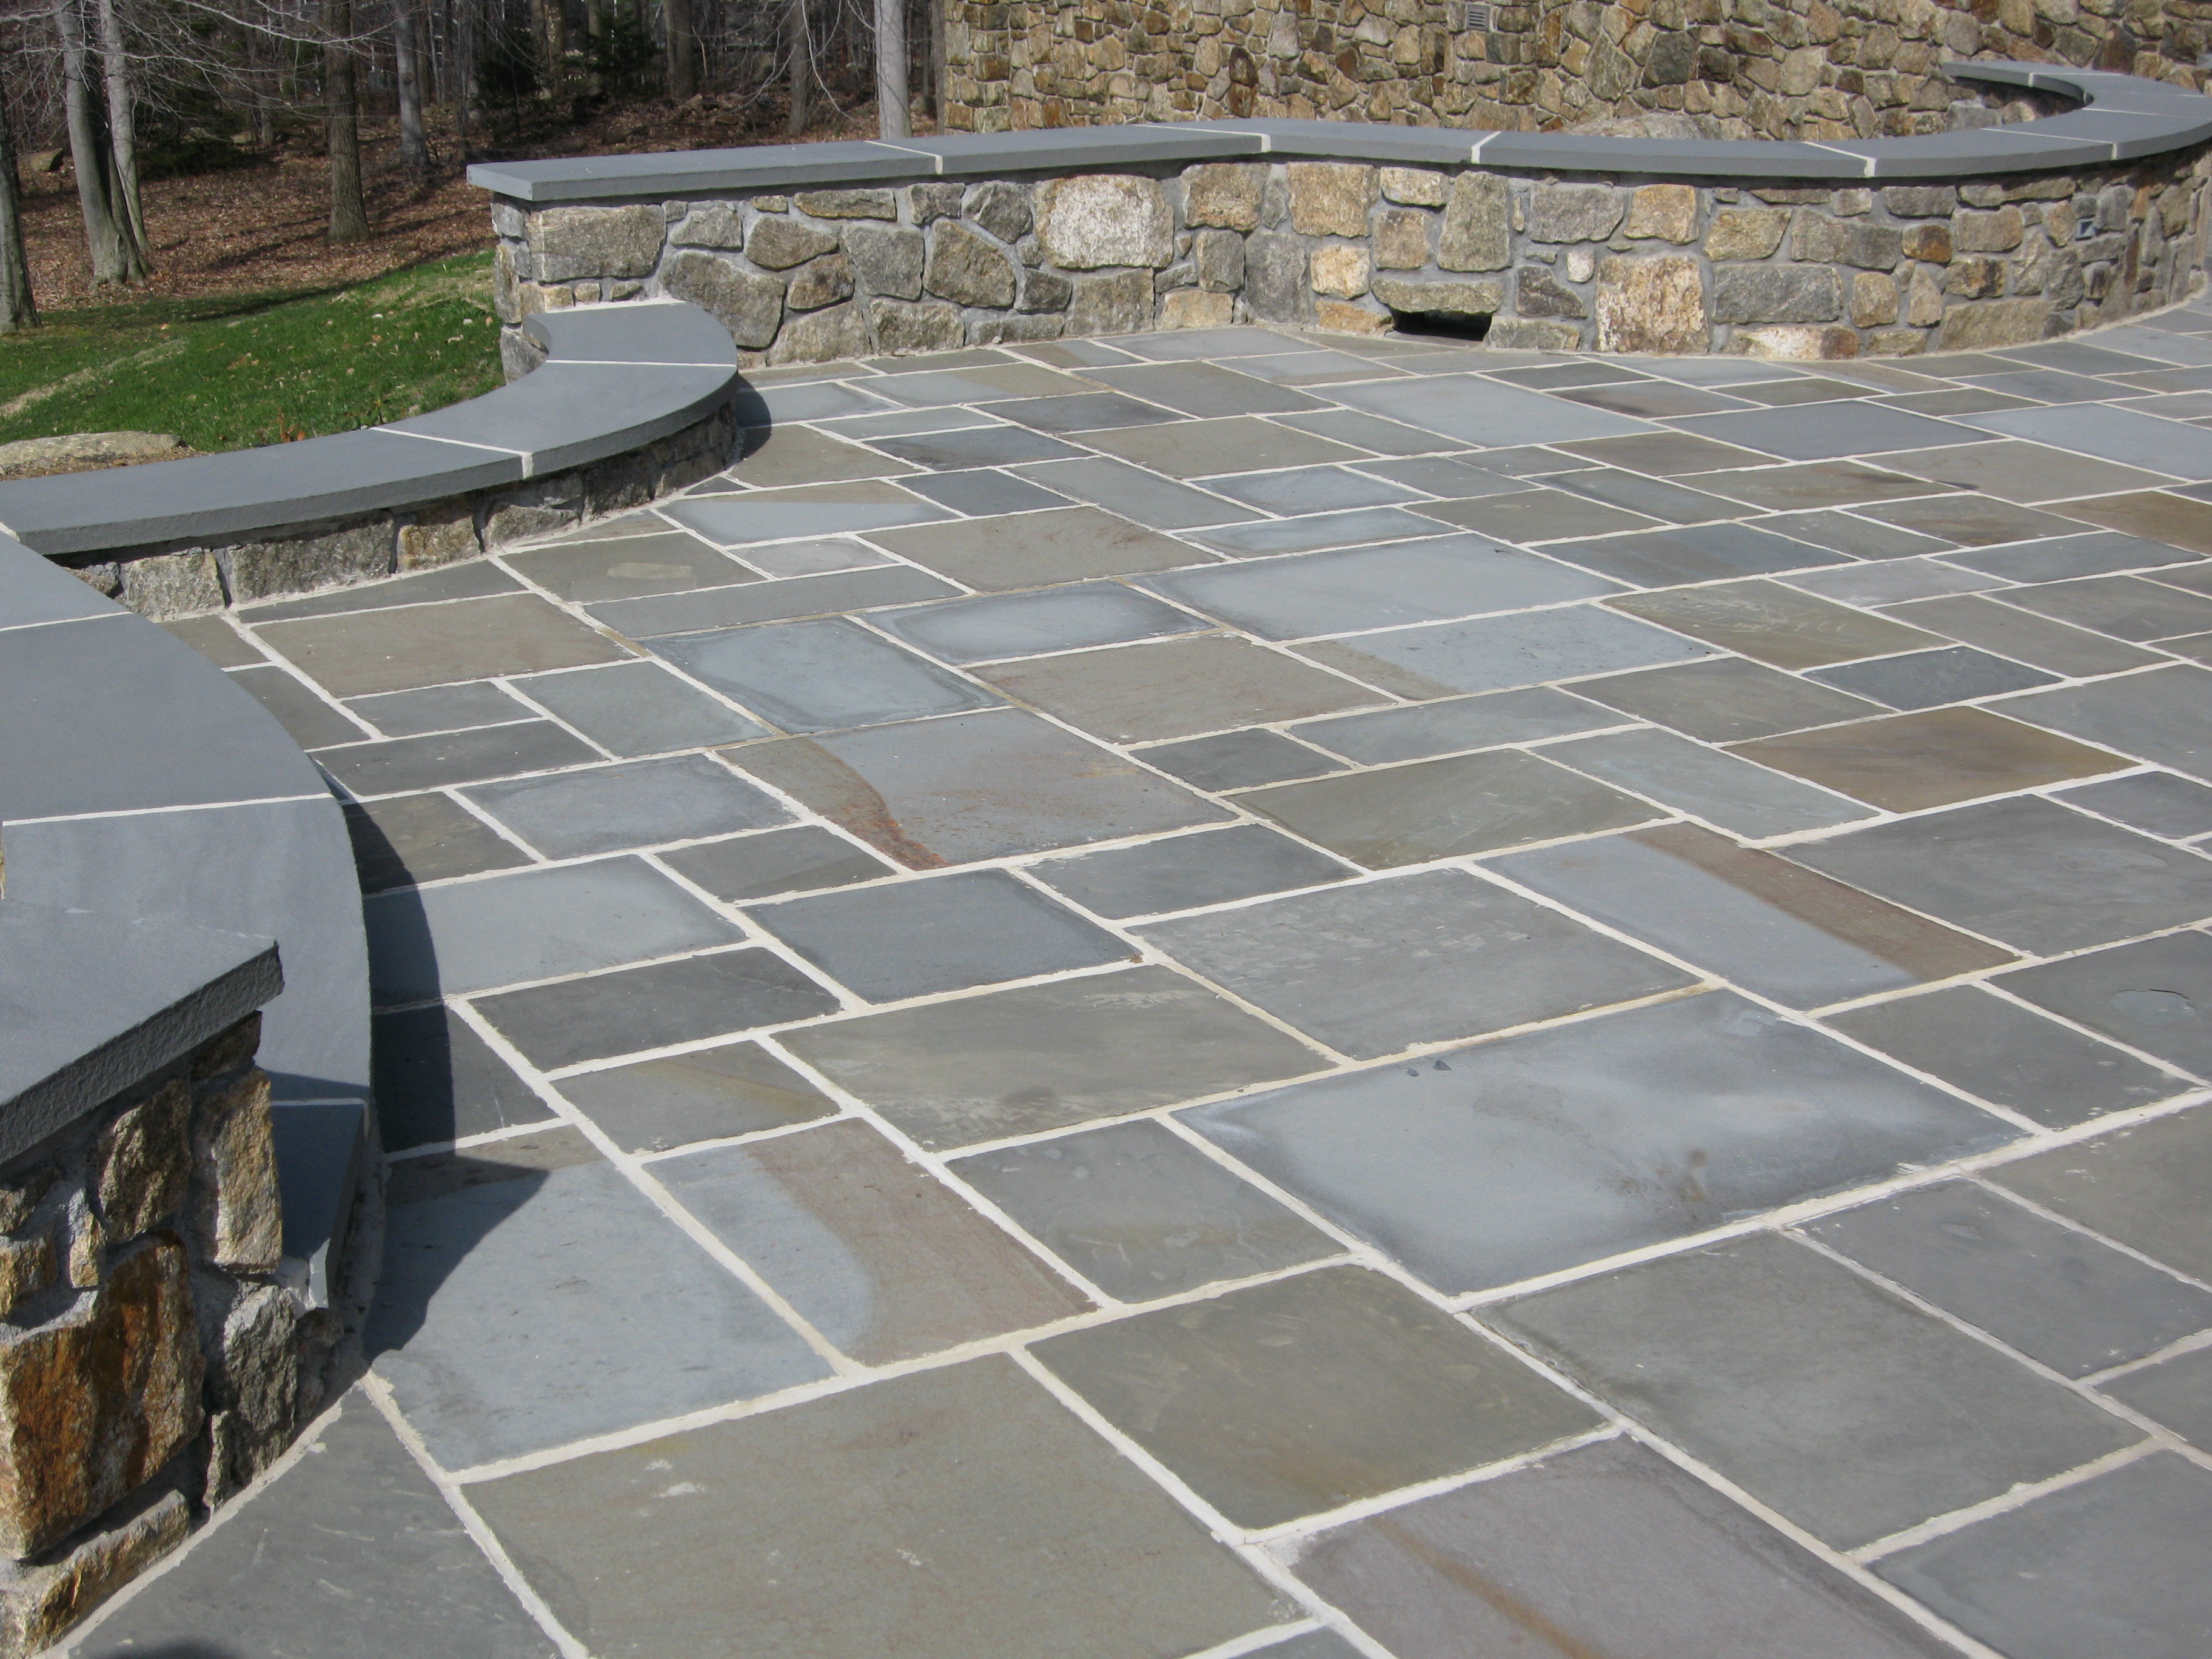 Blue Stone Patio Base » Design And Ideas. Building Patio With Flagstone. Www.walmart Patio Furniture. Patio Homes Memorial Area Houston Tx. Patio Table Sets Lowes. Www Patio Seguro. Home Casual Patio Cushions. Discount Patio Furniture Niagara. Patio Pavers For Sale In Kansas City